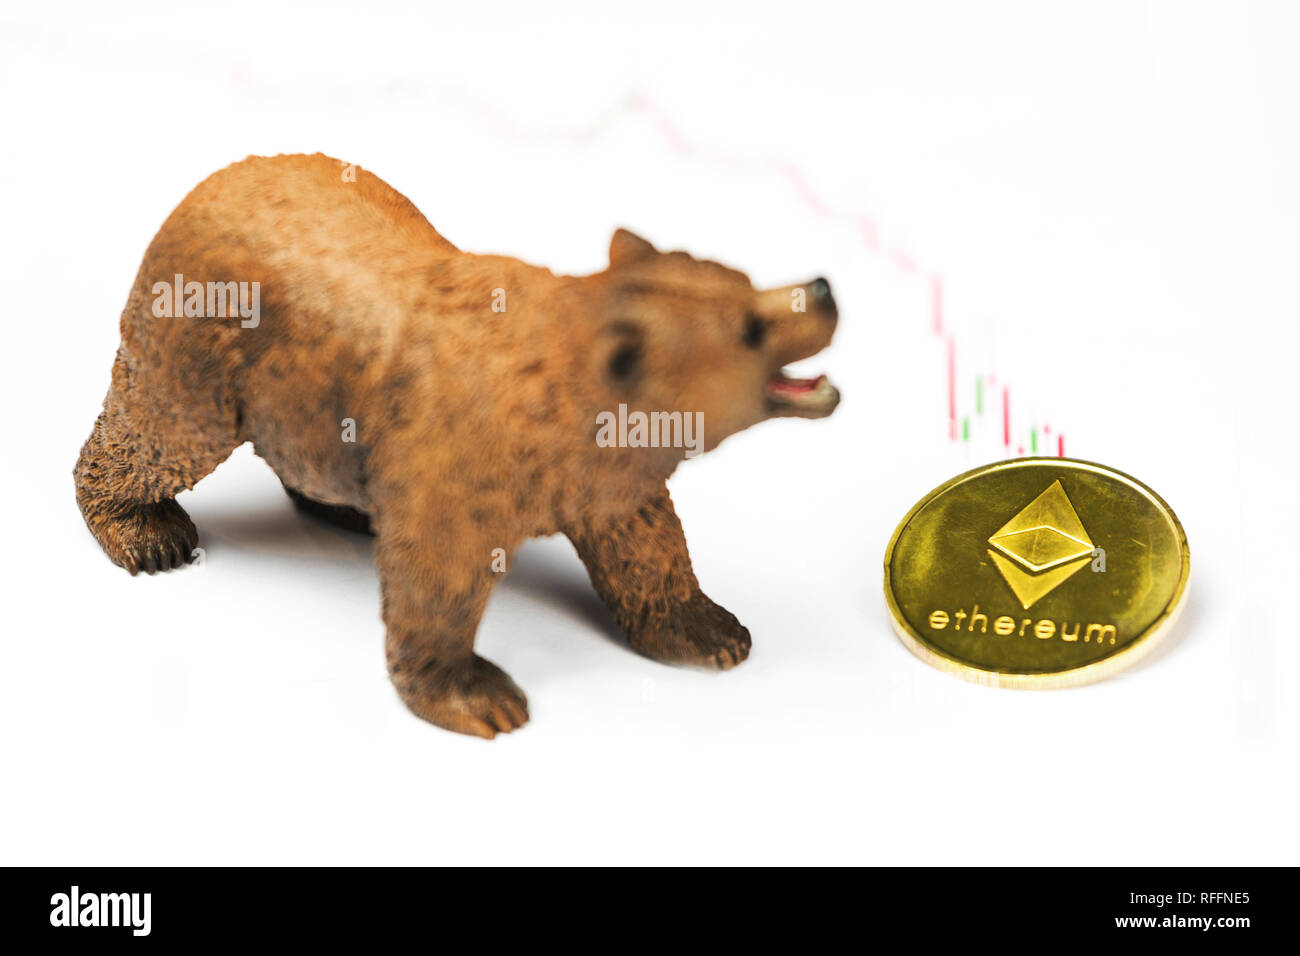 Cryptocurrency Ethereum price crash and drop as a bear trend concept on a white background Stock Photo